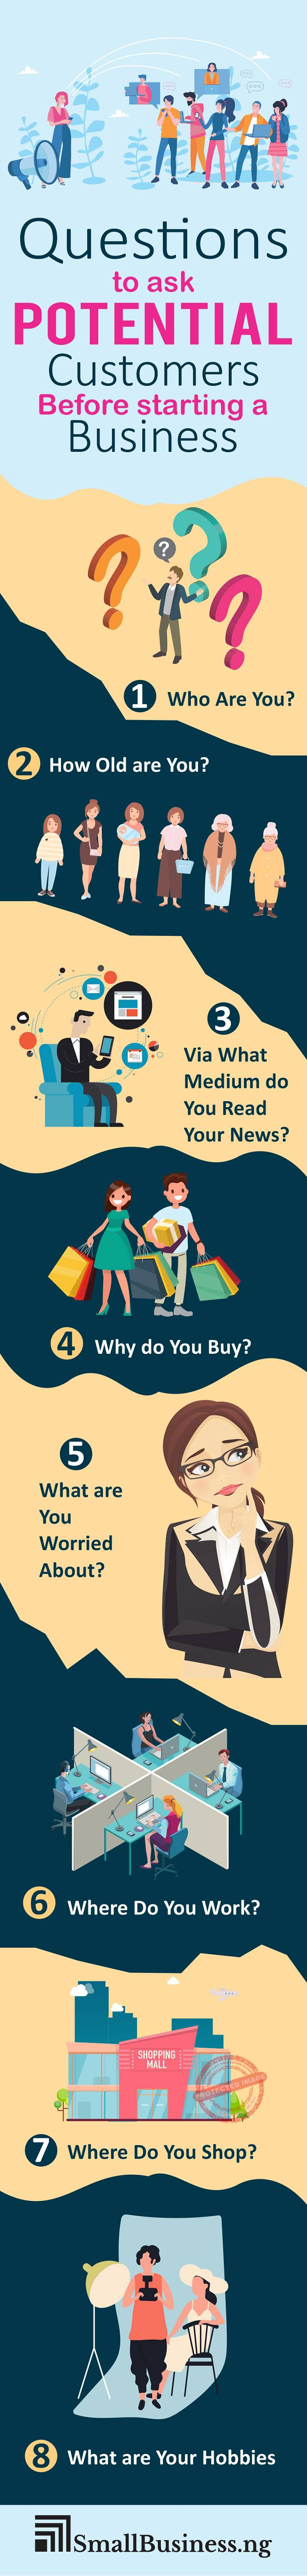 Questions to ask potential customers before starting a business infographic